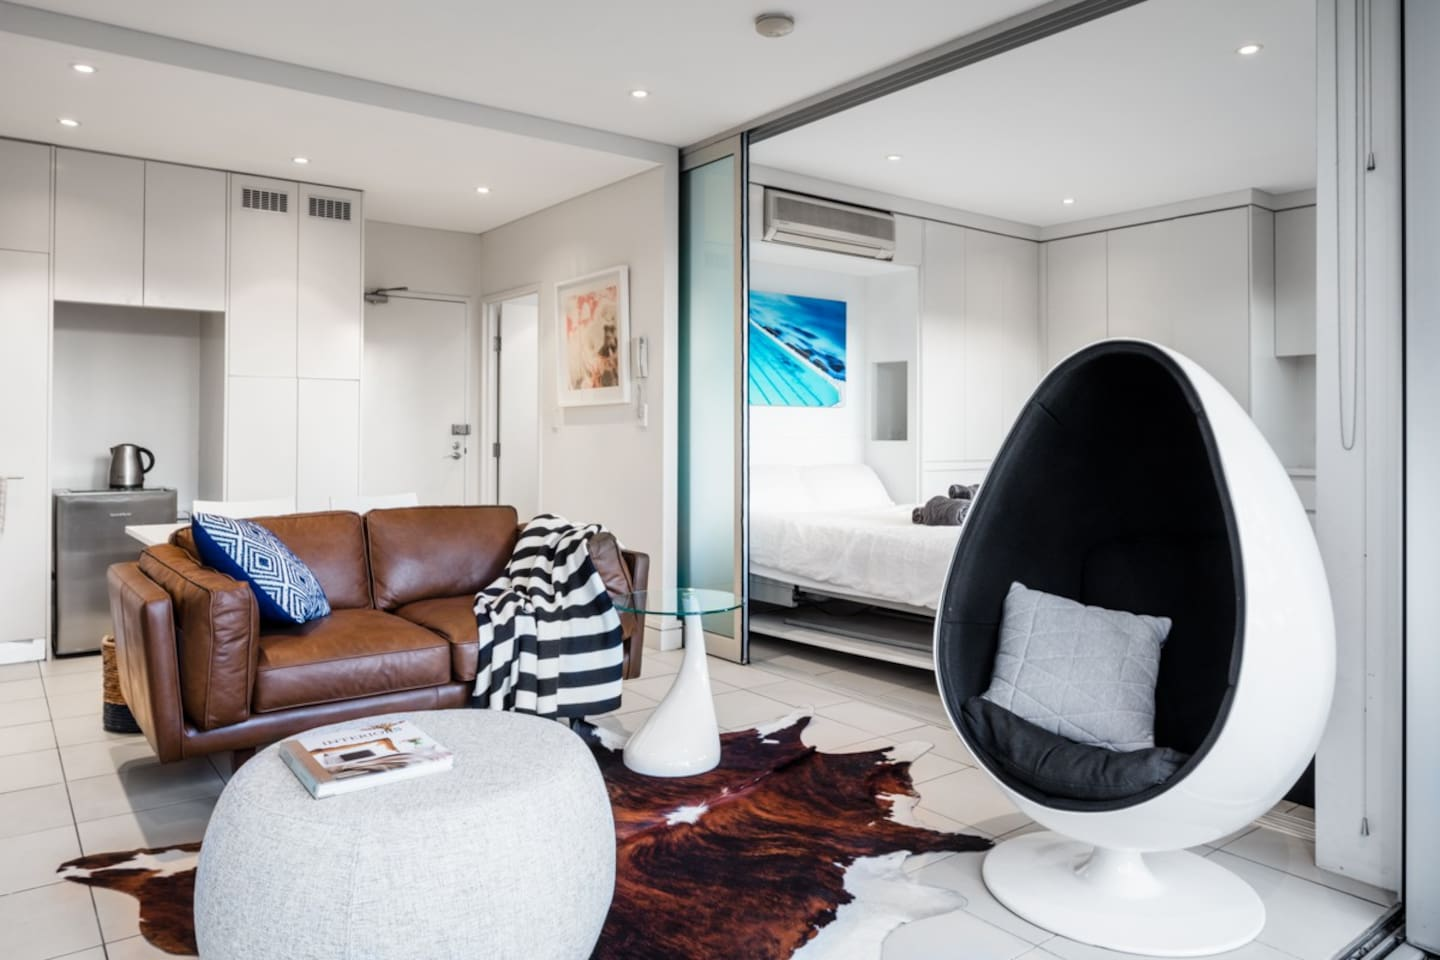 New leather sofa and designer egg chair, cowhide rug, sliding glass panel between living area and bedroom, new Daikin air conditioner (installed since photo taken), table and two chairs behind sofa.